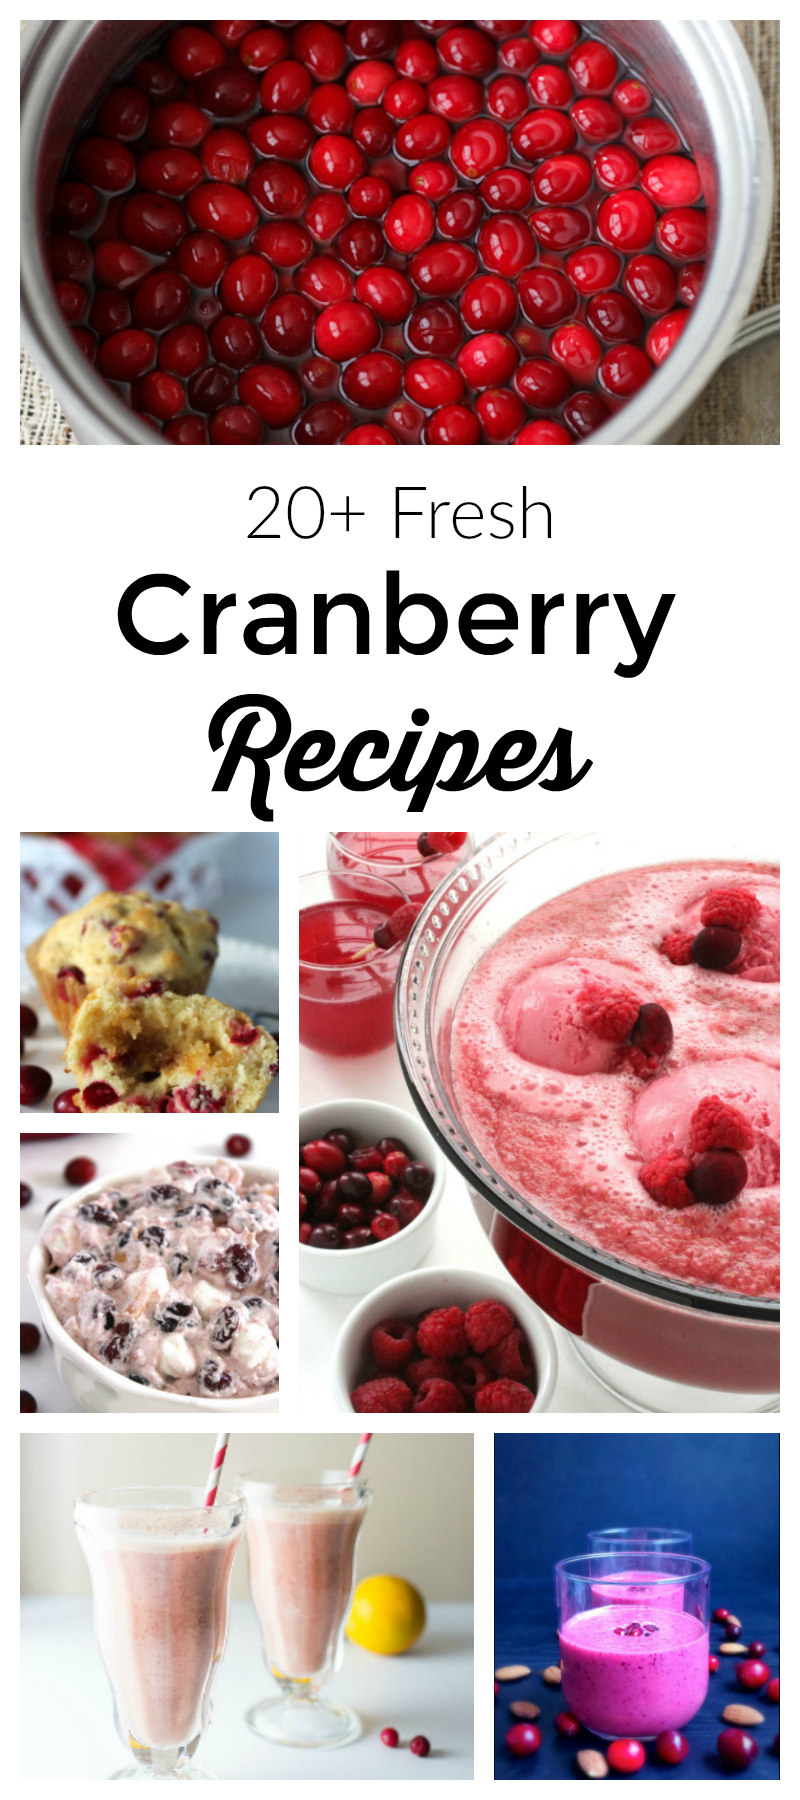 More Than 20 Fresh Cranberry Recipes - Food blogger recipe round up